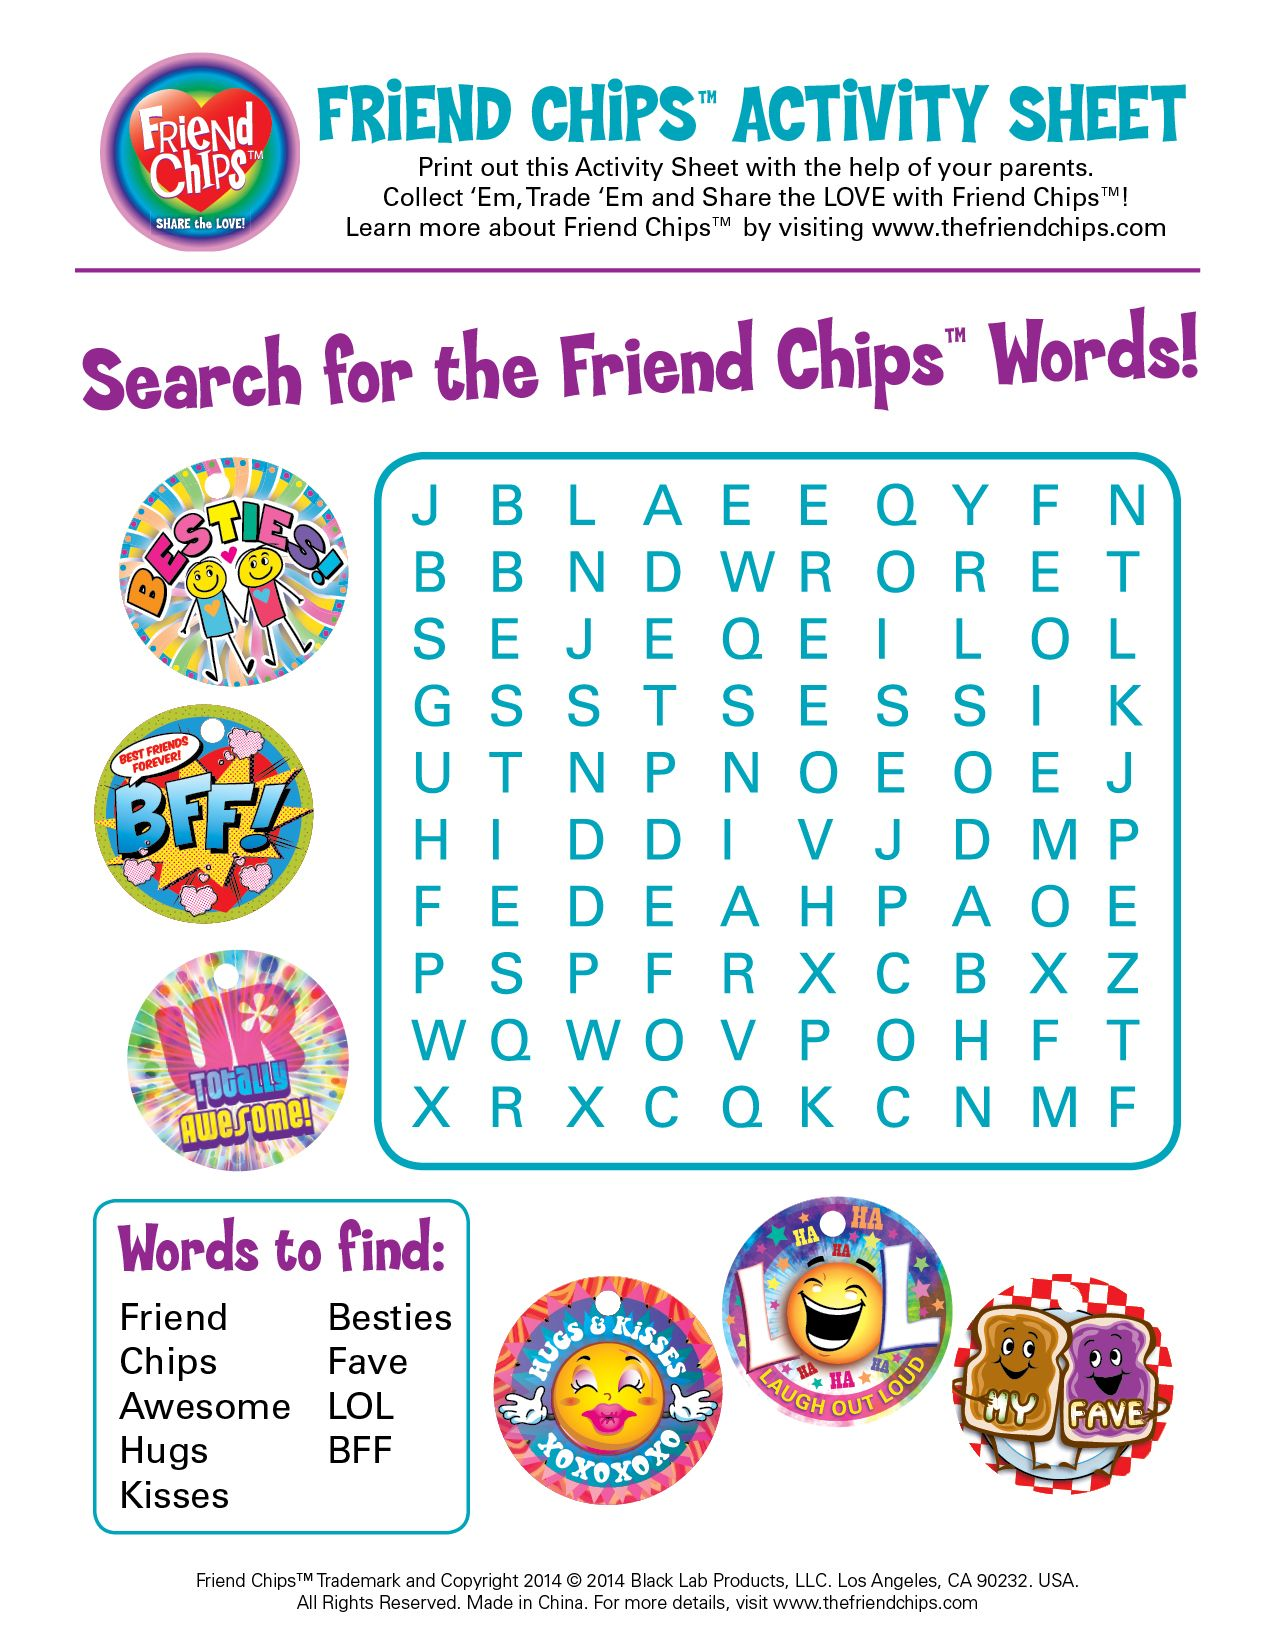 Share The Love With Friend Chips Printables Search For The Friend Chips Words Friendchips